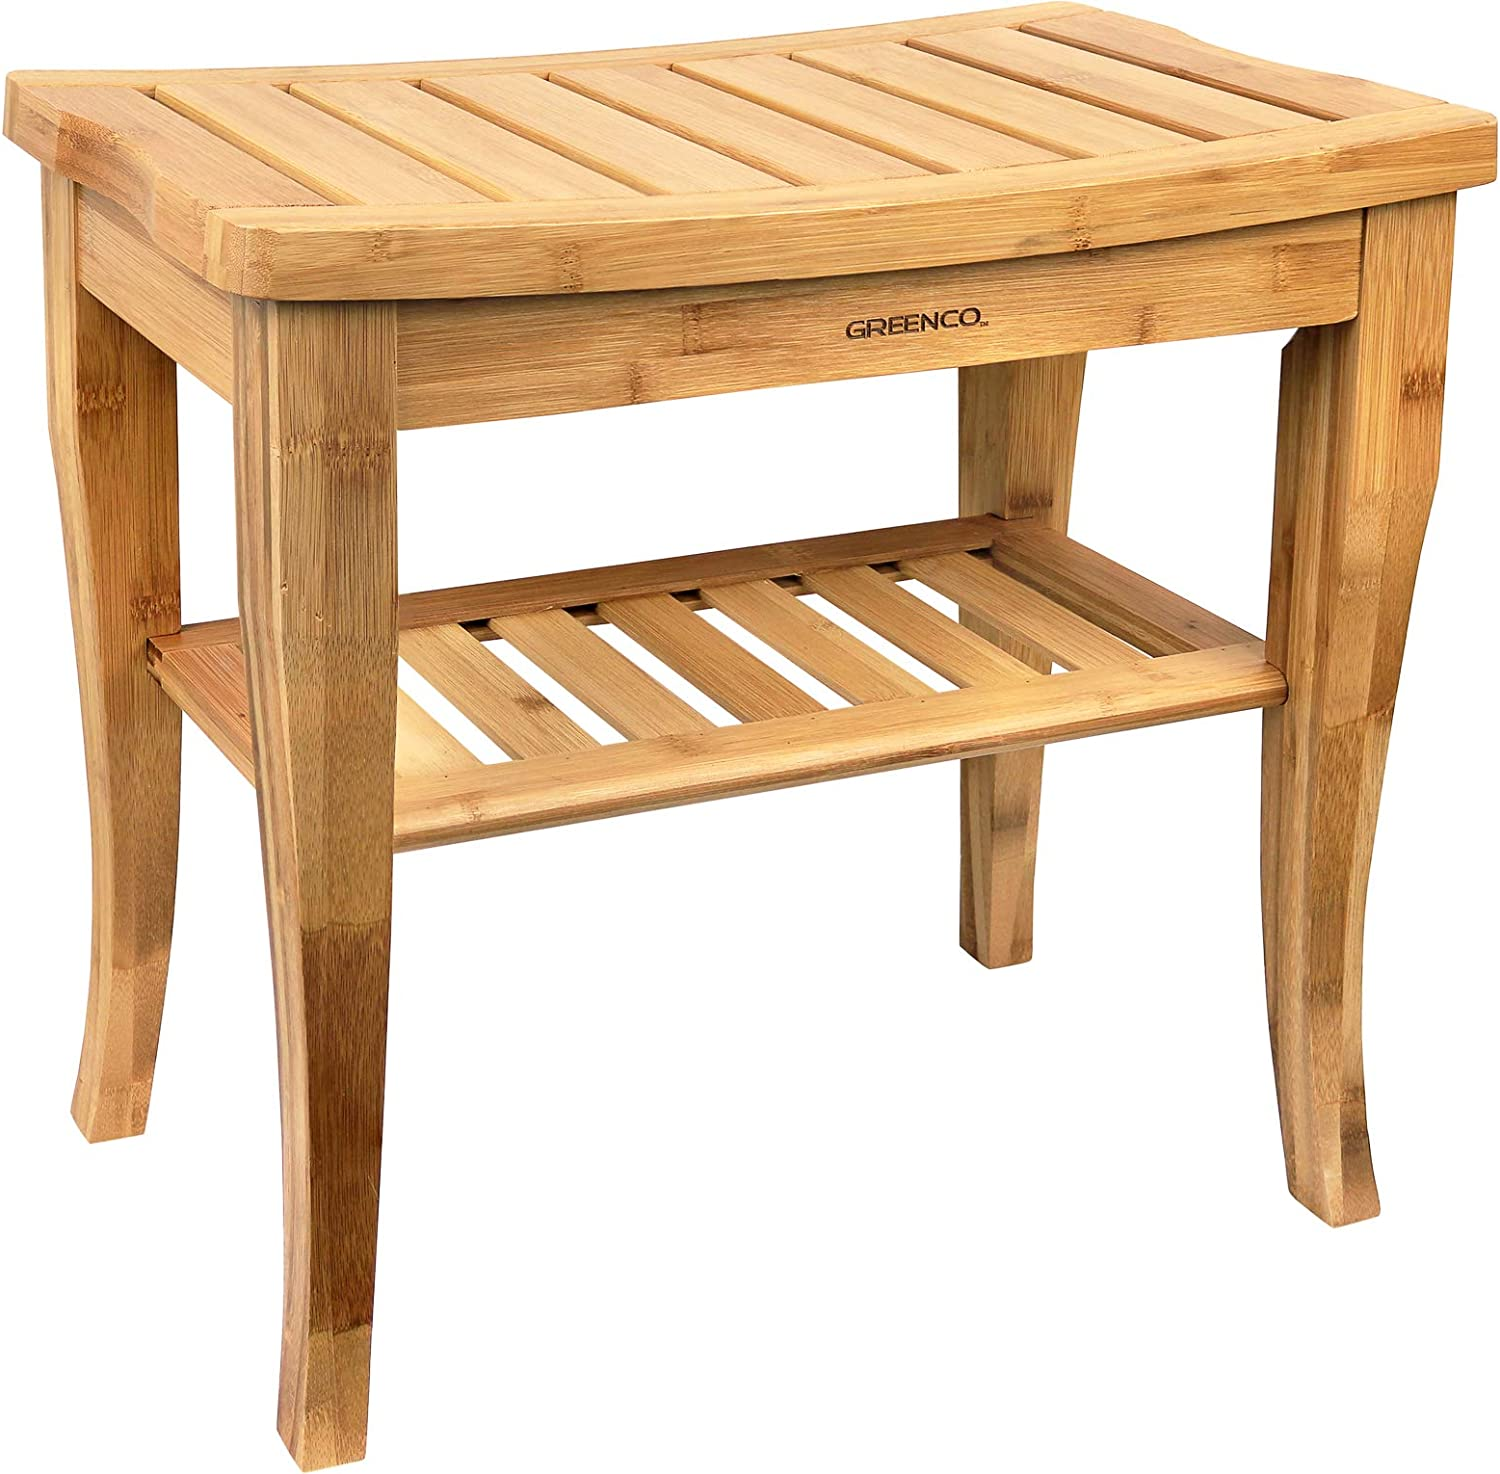 Greenco Waterproof Bamboo Shower Bench with Shelf, Wooden Spa Bath Stool, Indoor and Outdoor.